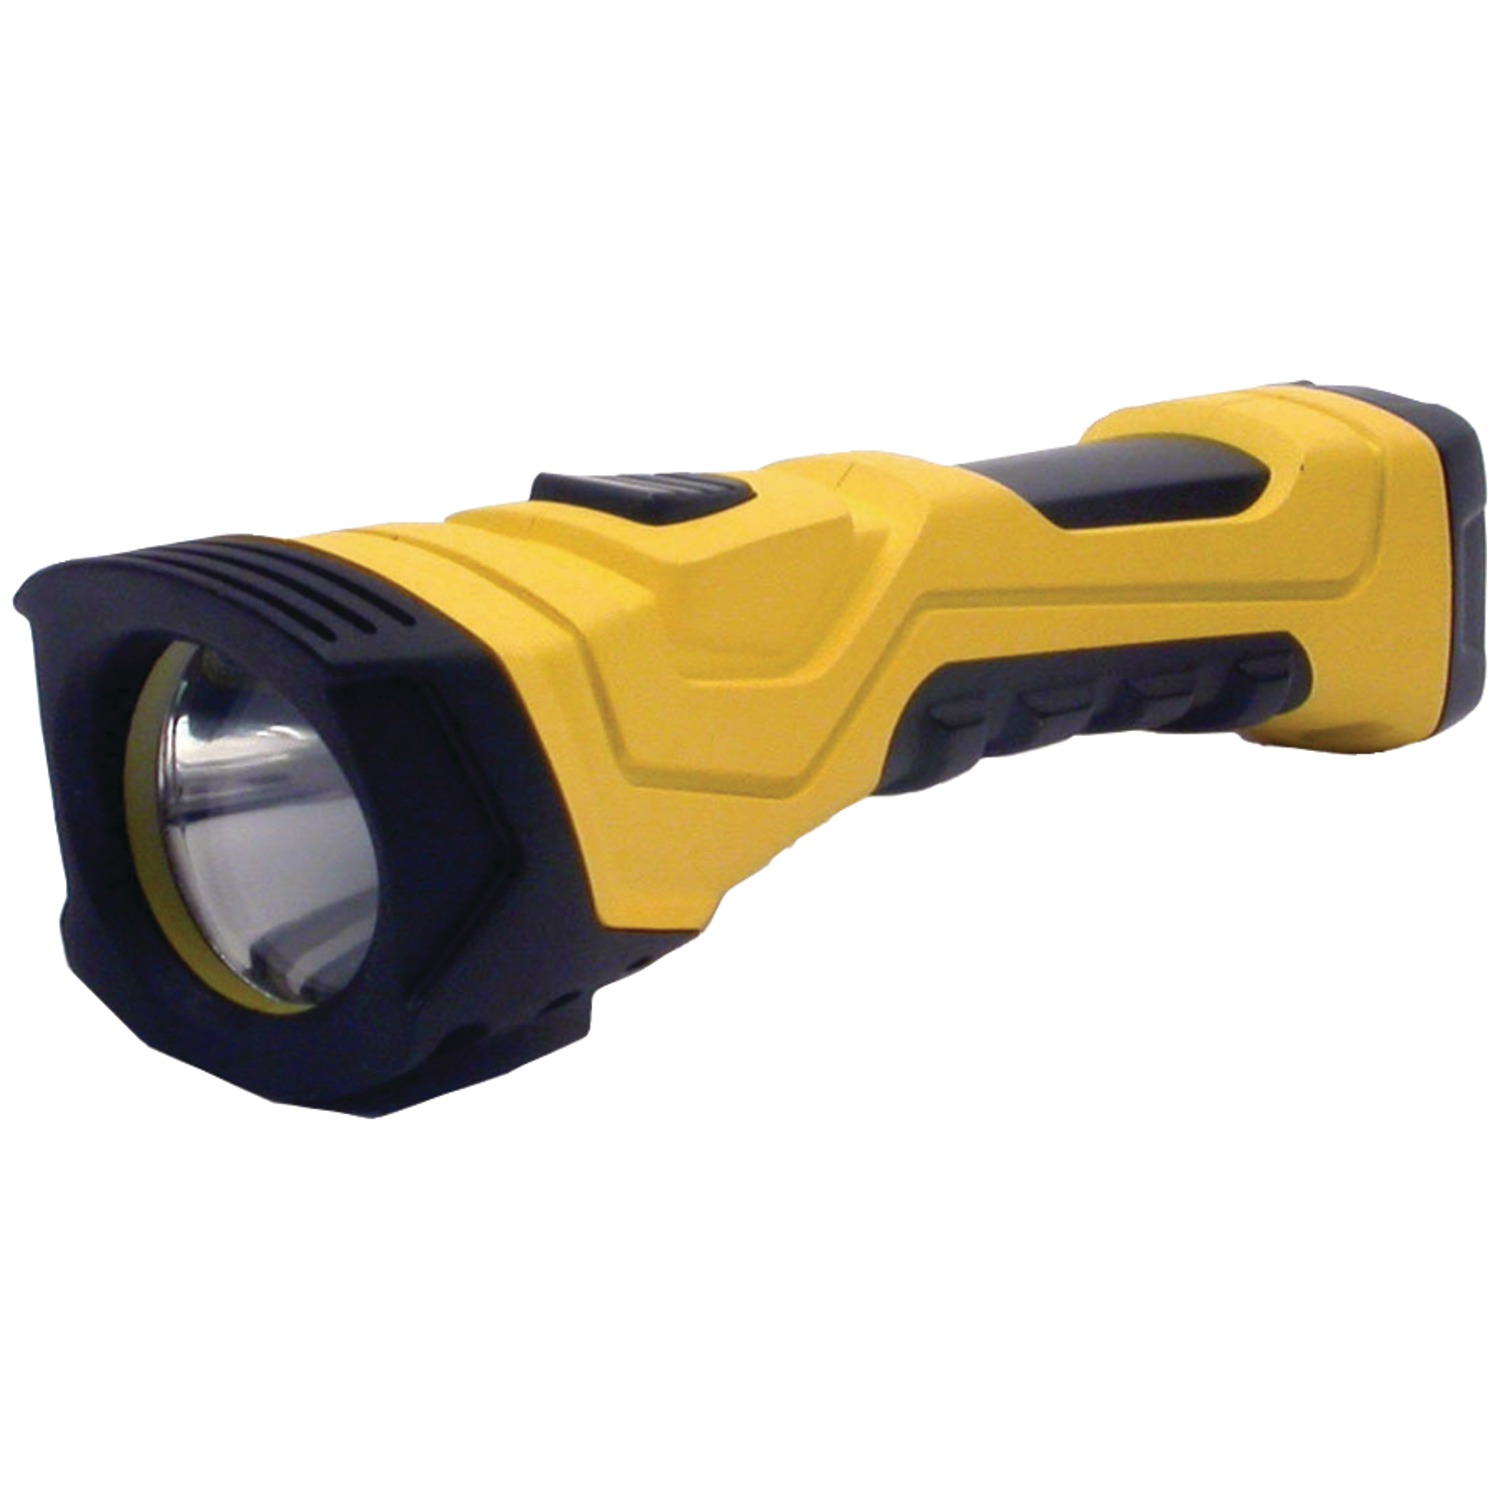 Dorcy 41-4750 190-Lumen LED Cyber Light Flashlight (Yellow) by dorcy